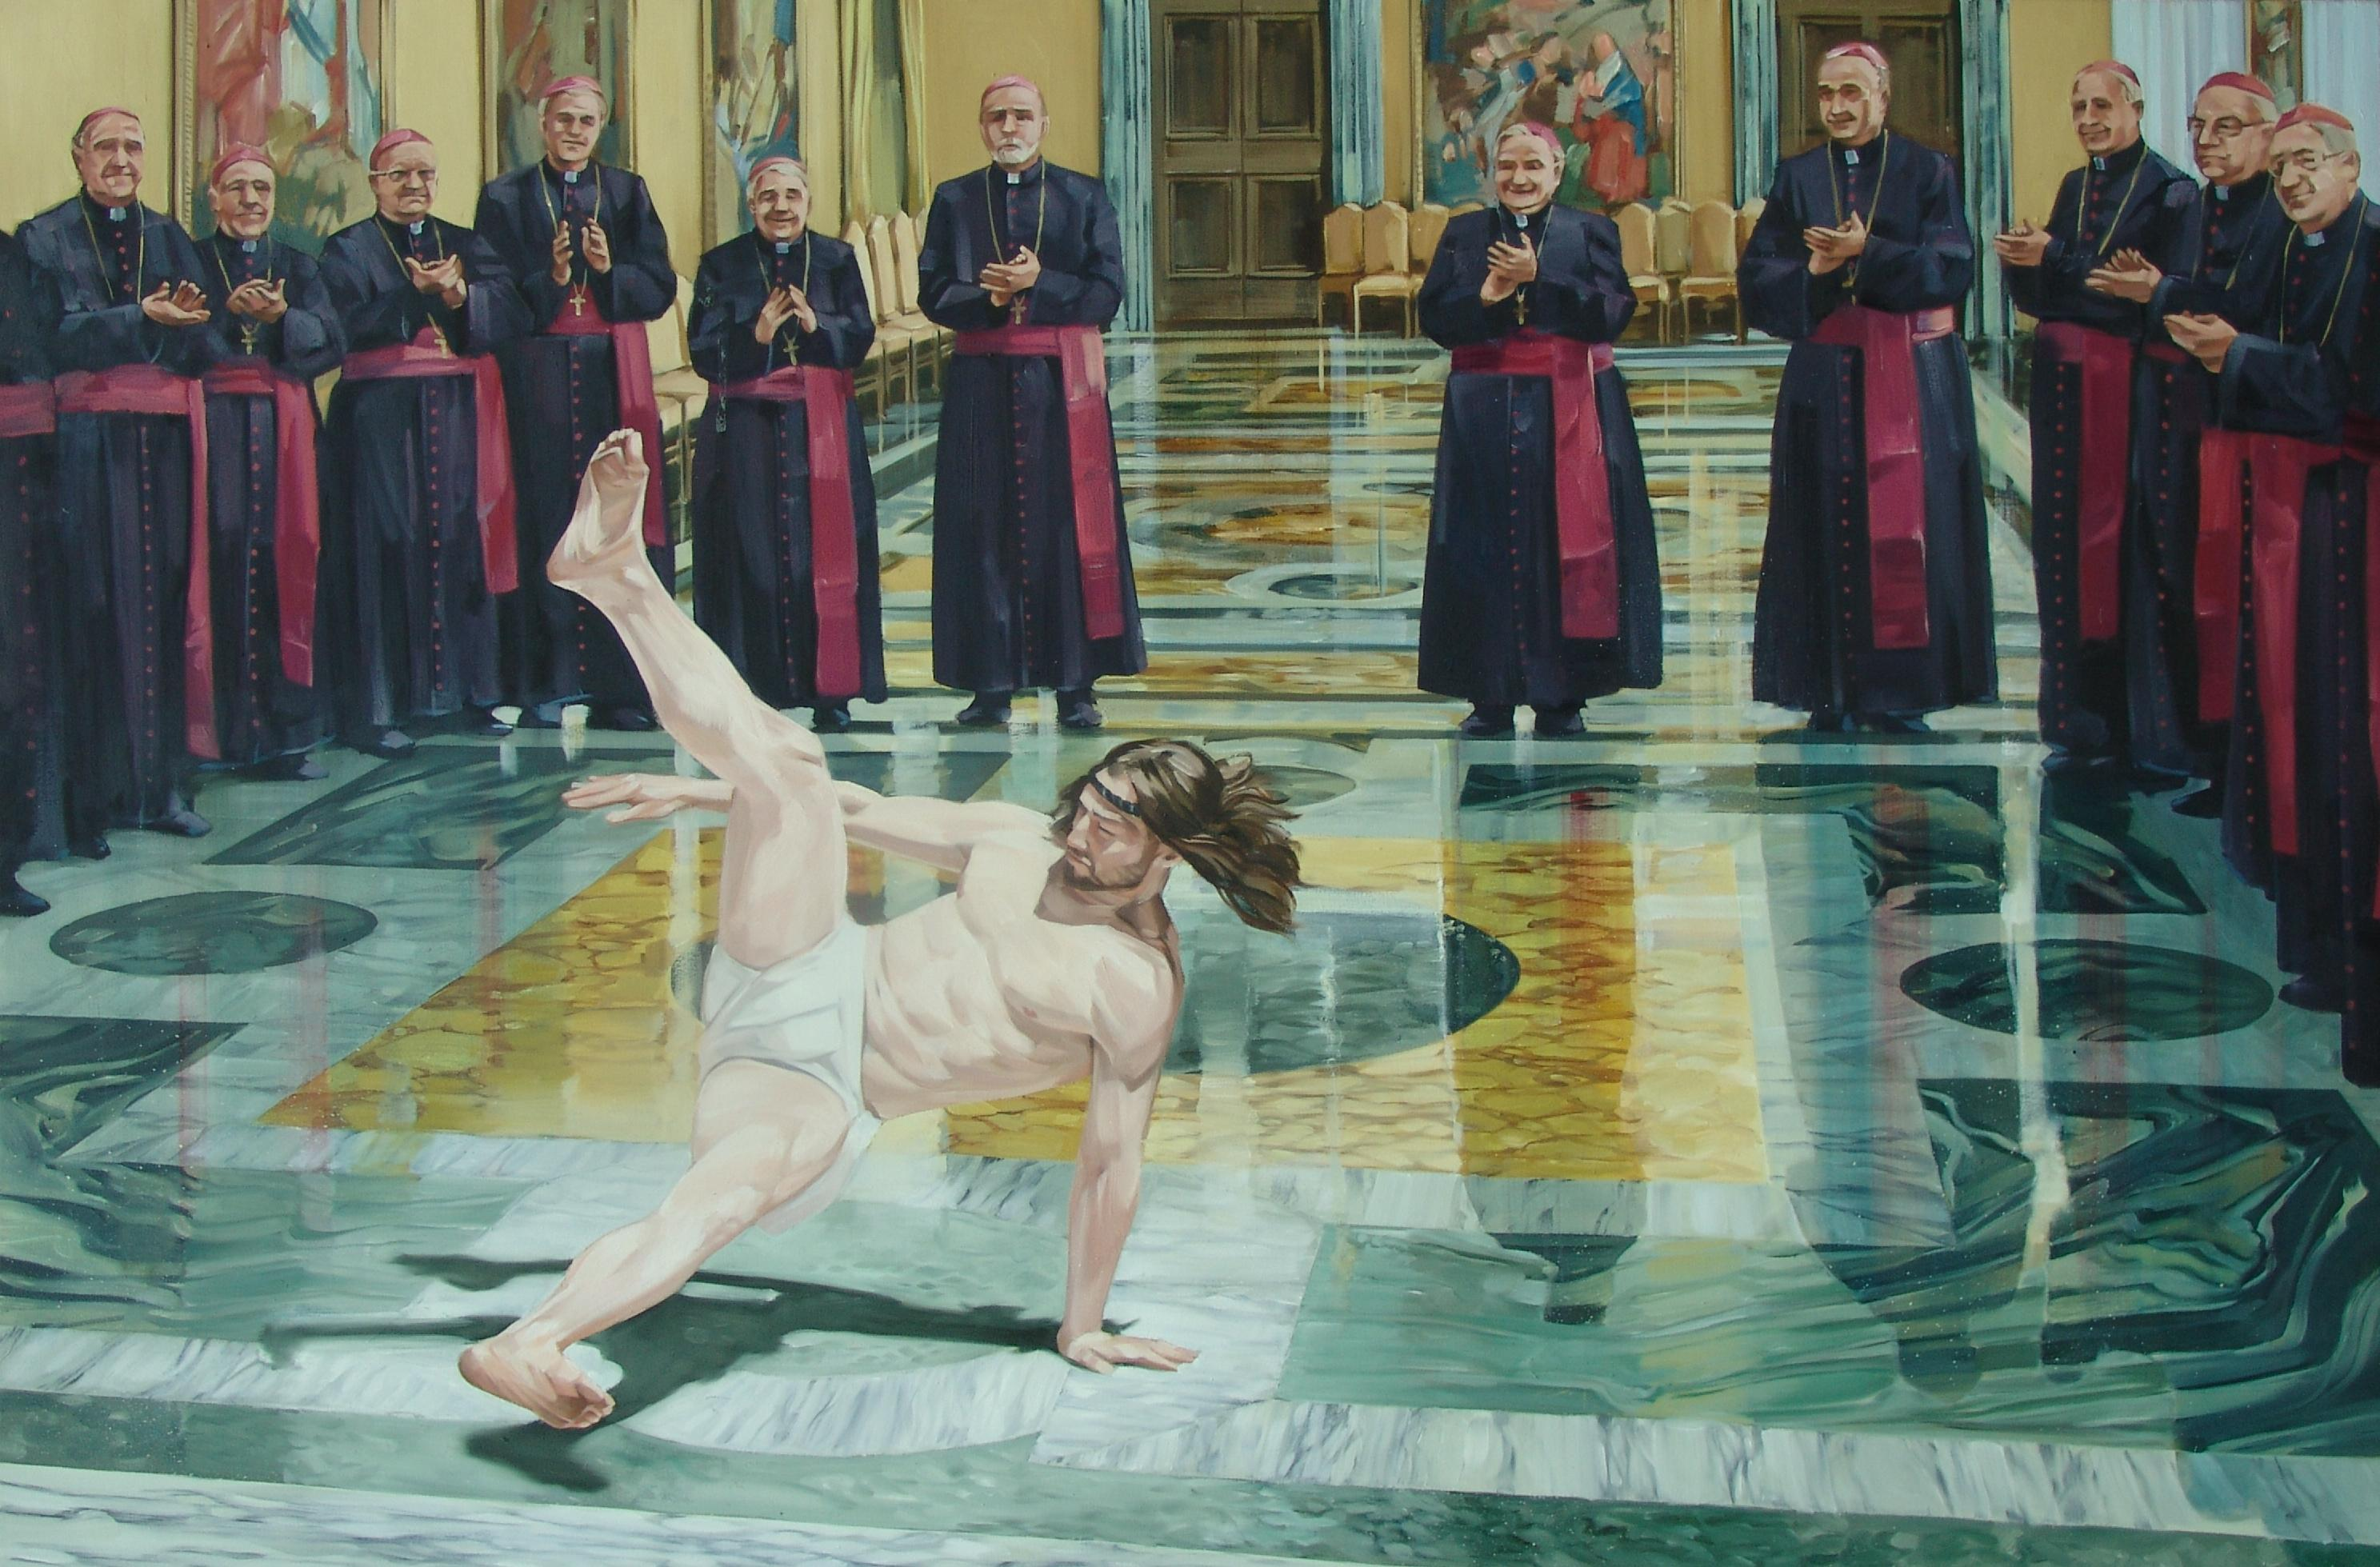 jesus-breakdance.jpeg (2975×1959)